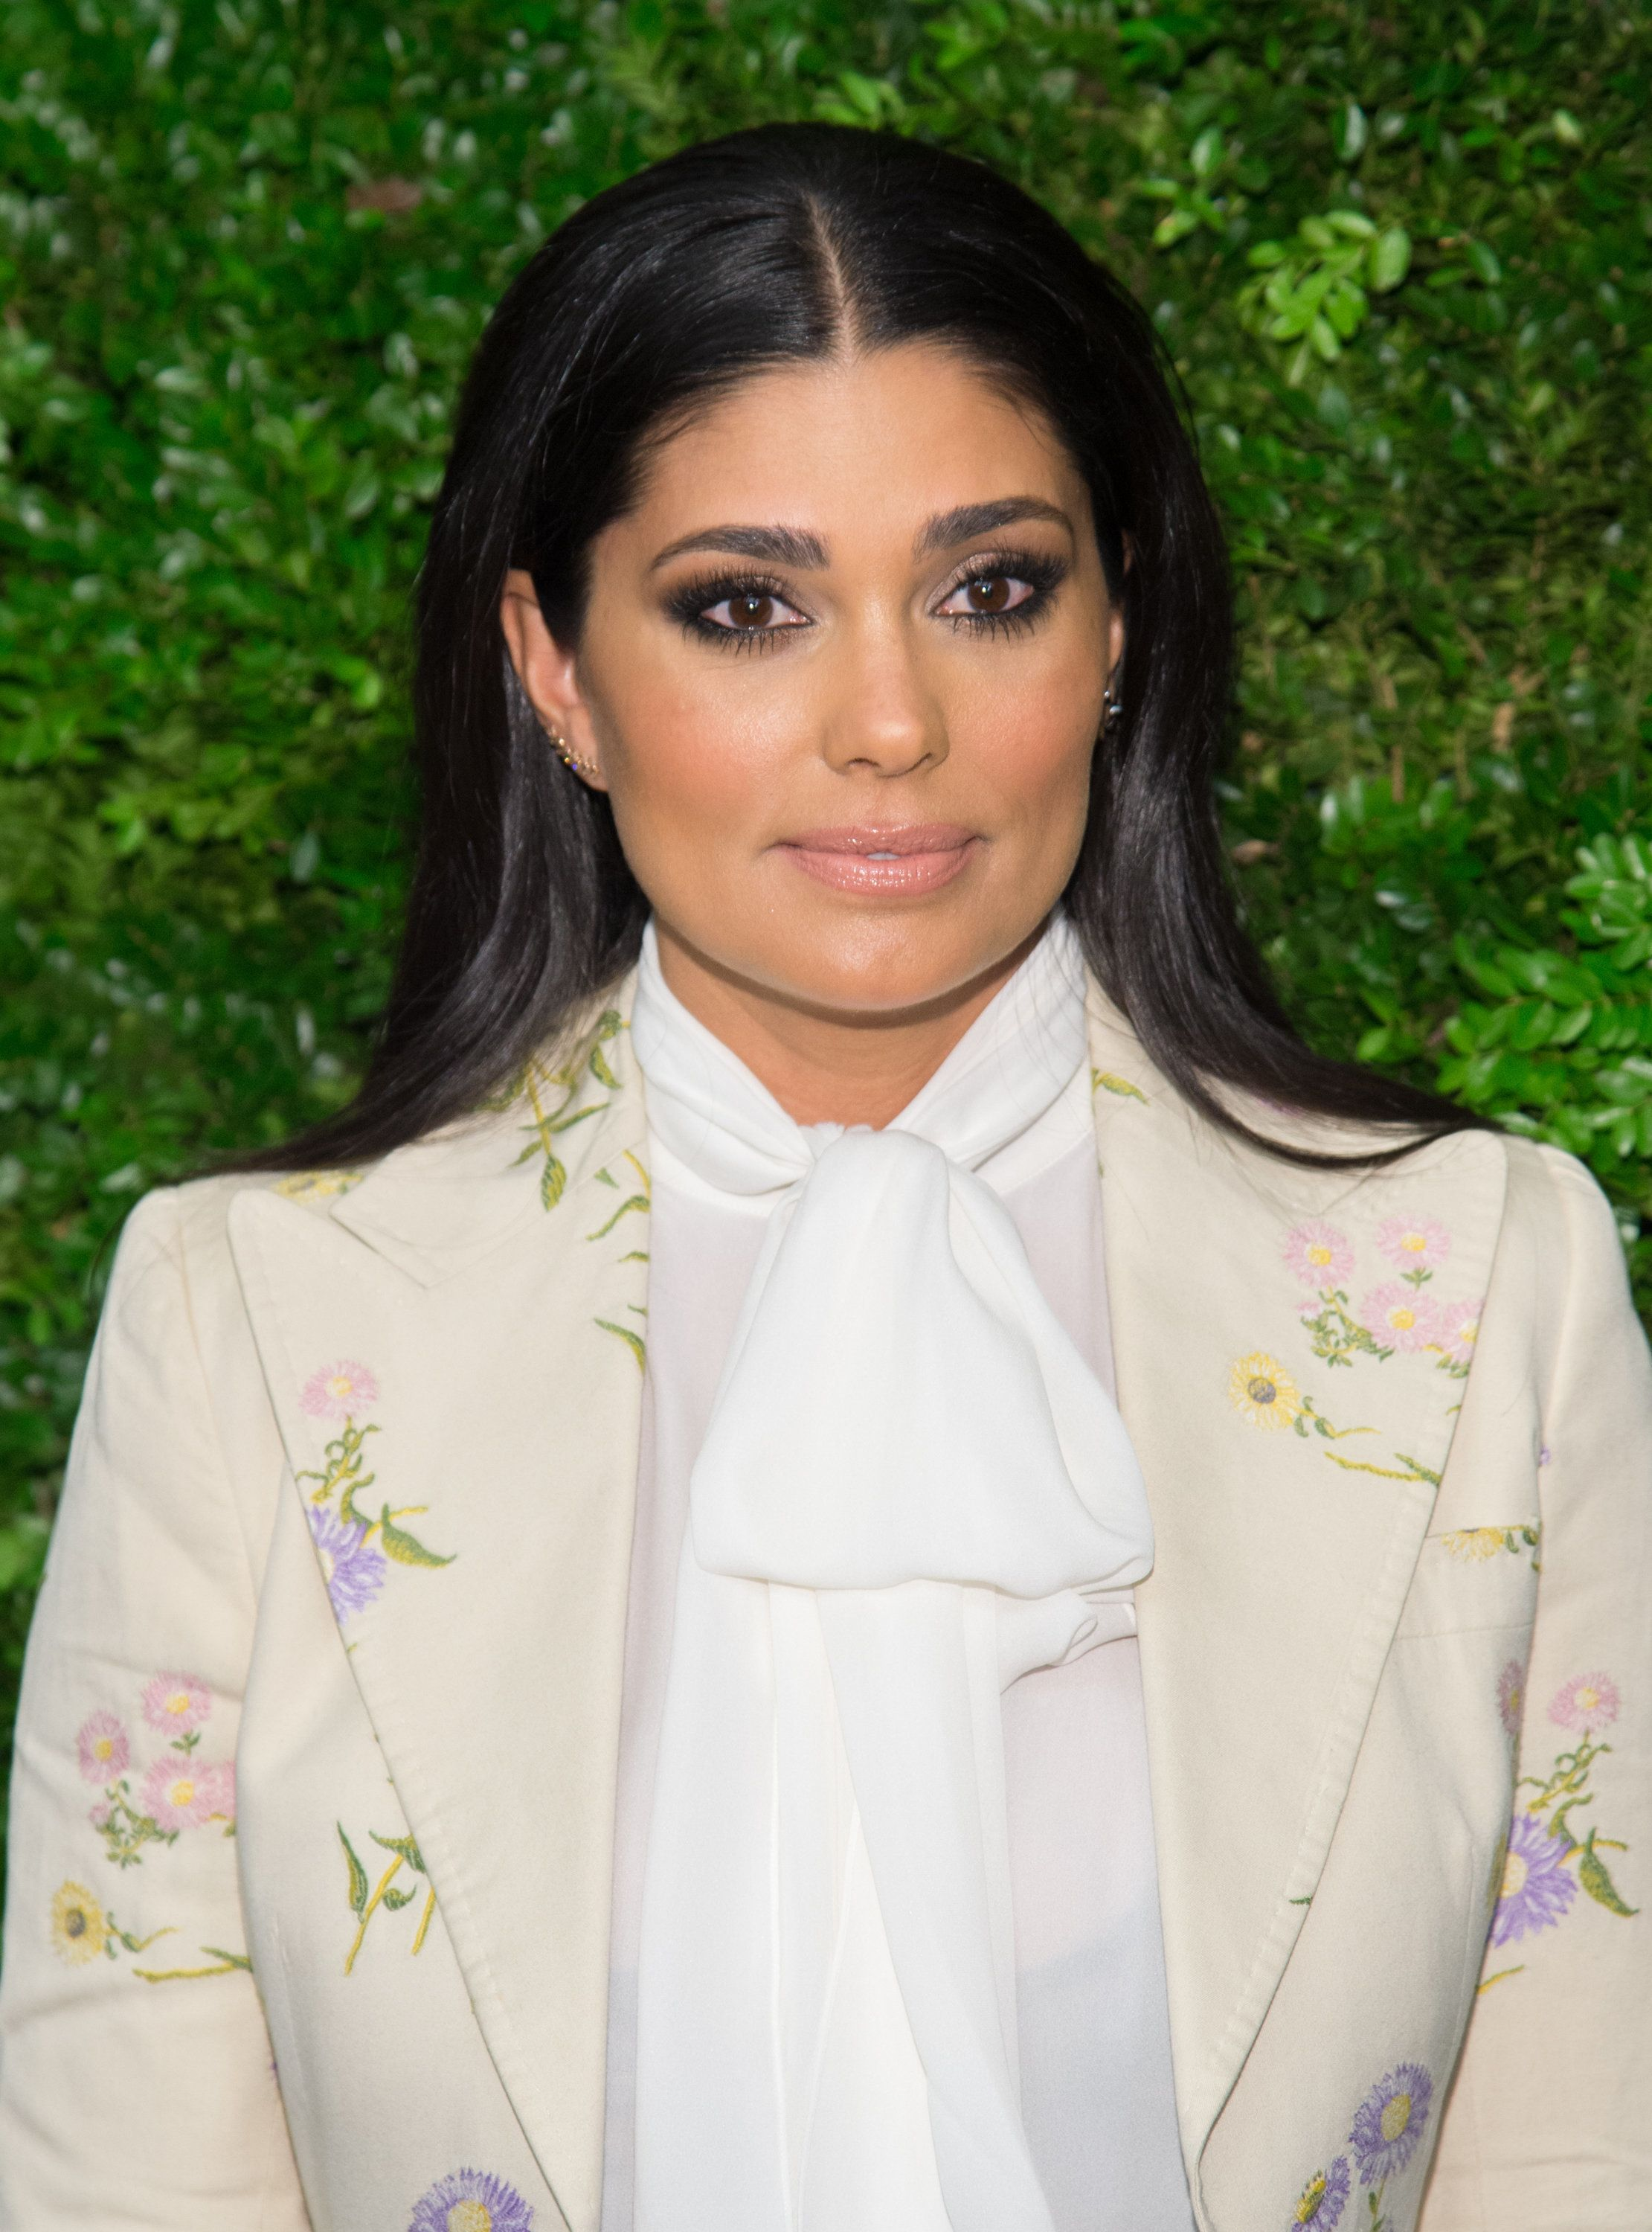 NEW YORK, NY - NOVEMBER 17:  Fashion Designer Rachel Roy attends the 8th Annual Museum Of Modern Art Film Benefit Honoring Cate Blanchett on November 17, 2015 in New York City.  (Photo by Mark Sagliocco/Getty Images)